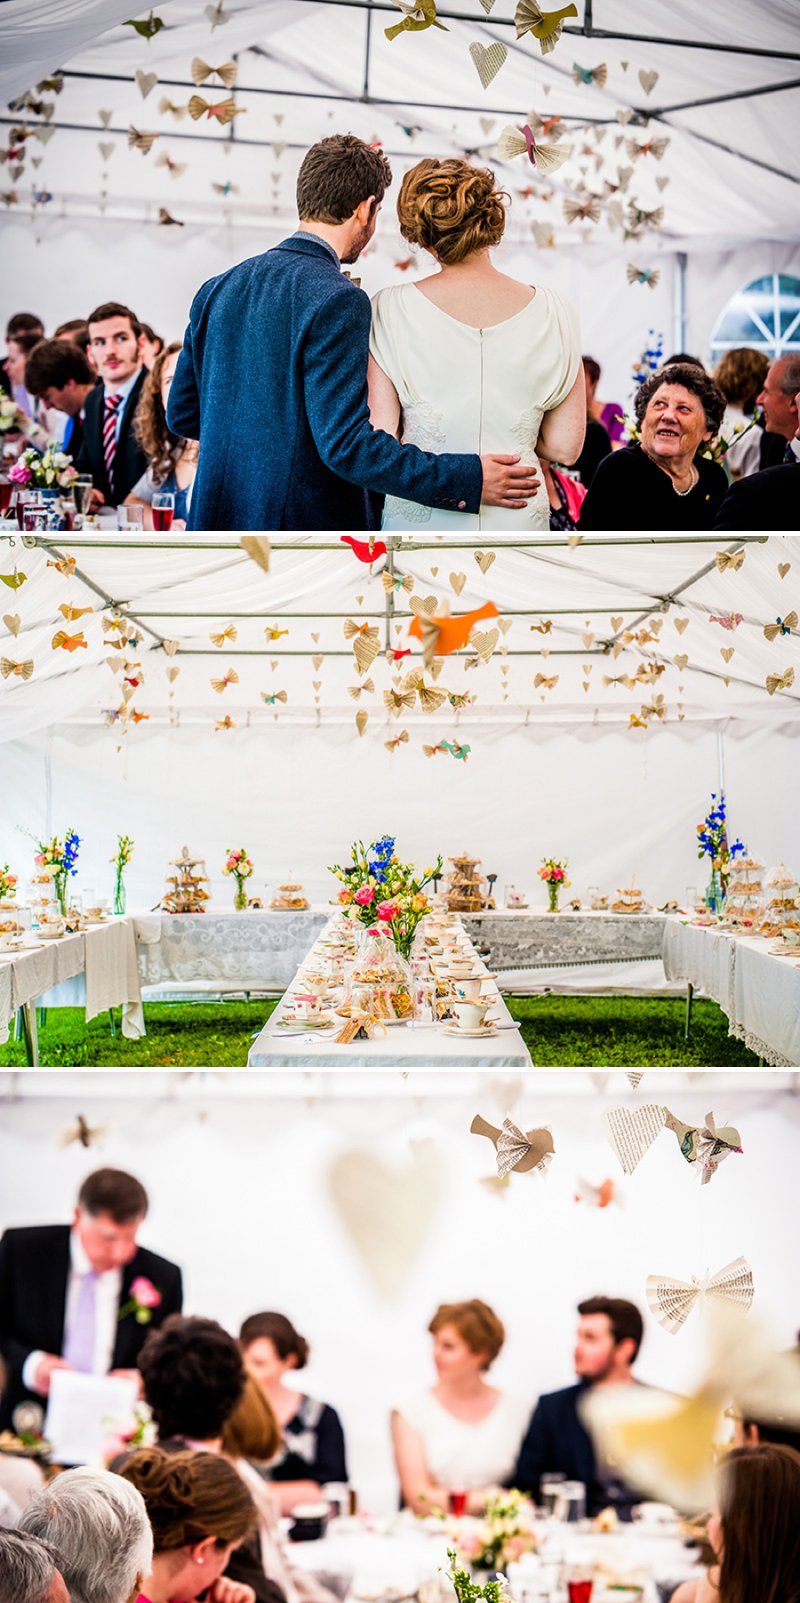 Rustic Backyard Wedding With Bride In Elegant Rapsimo Dress And Groom In Wool Suit And Bowtie With Lots Of Home Made Details And A High Tea Wedding Breakfast 8